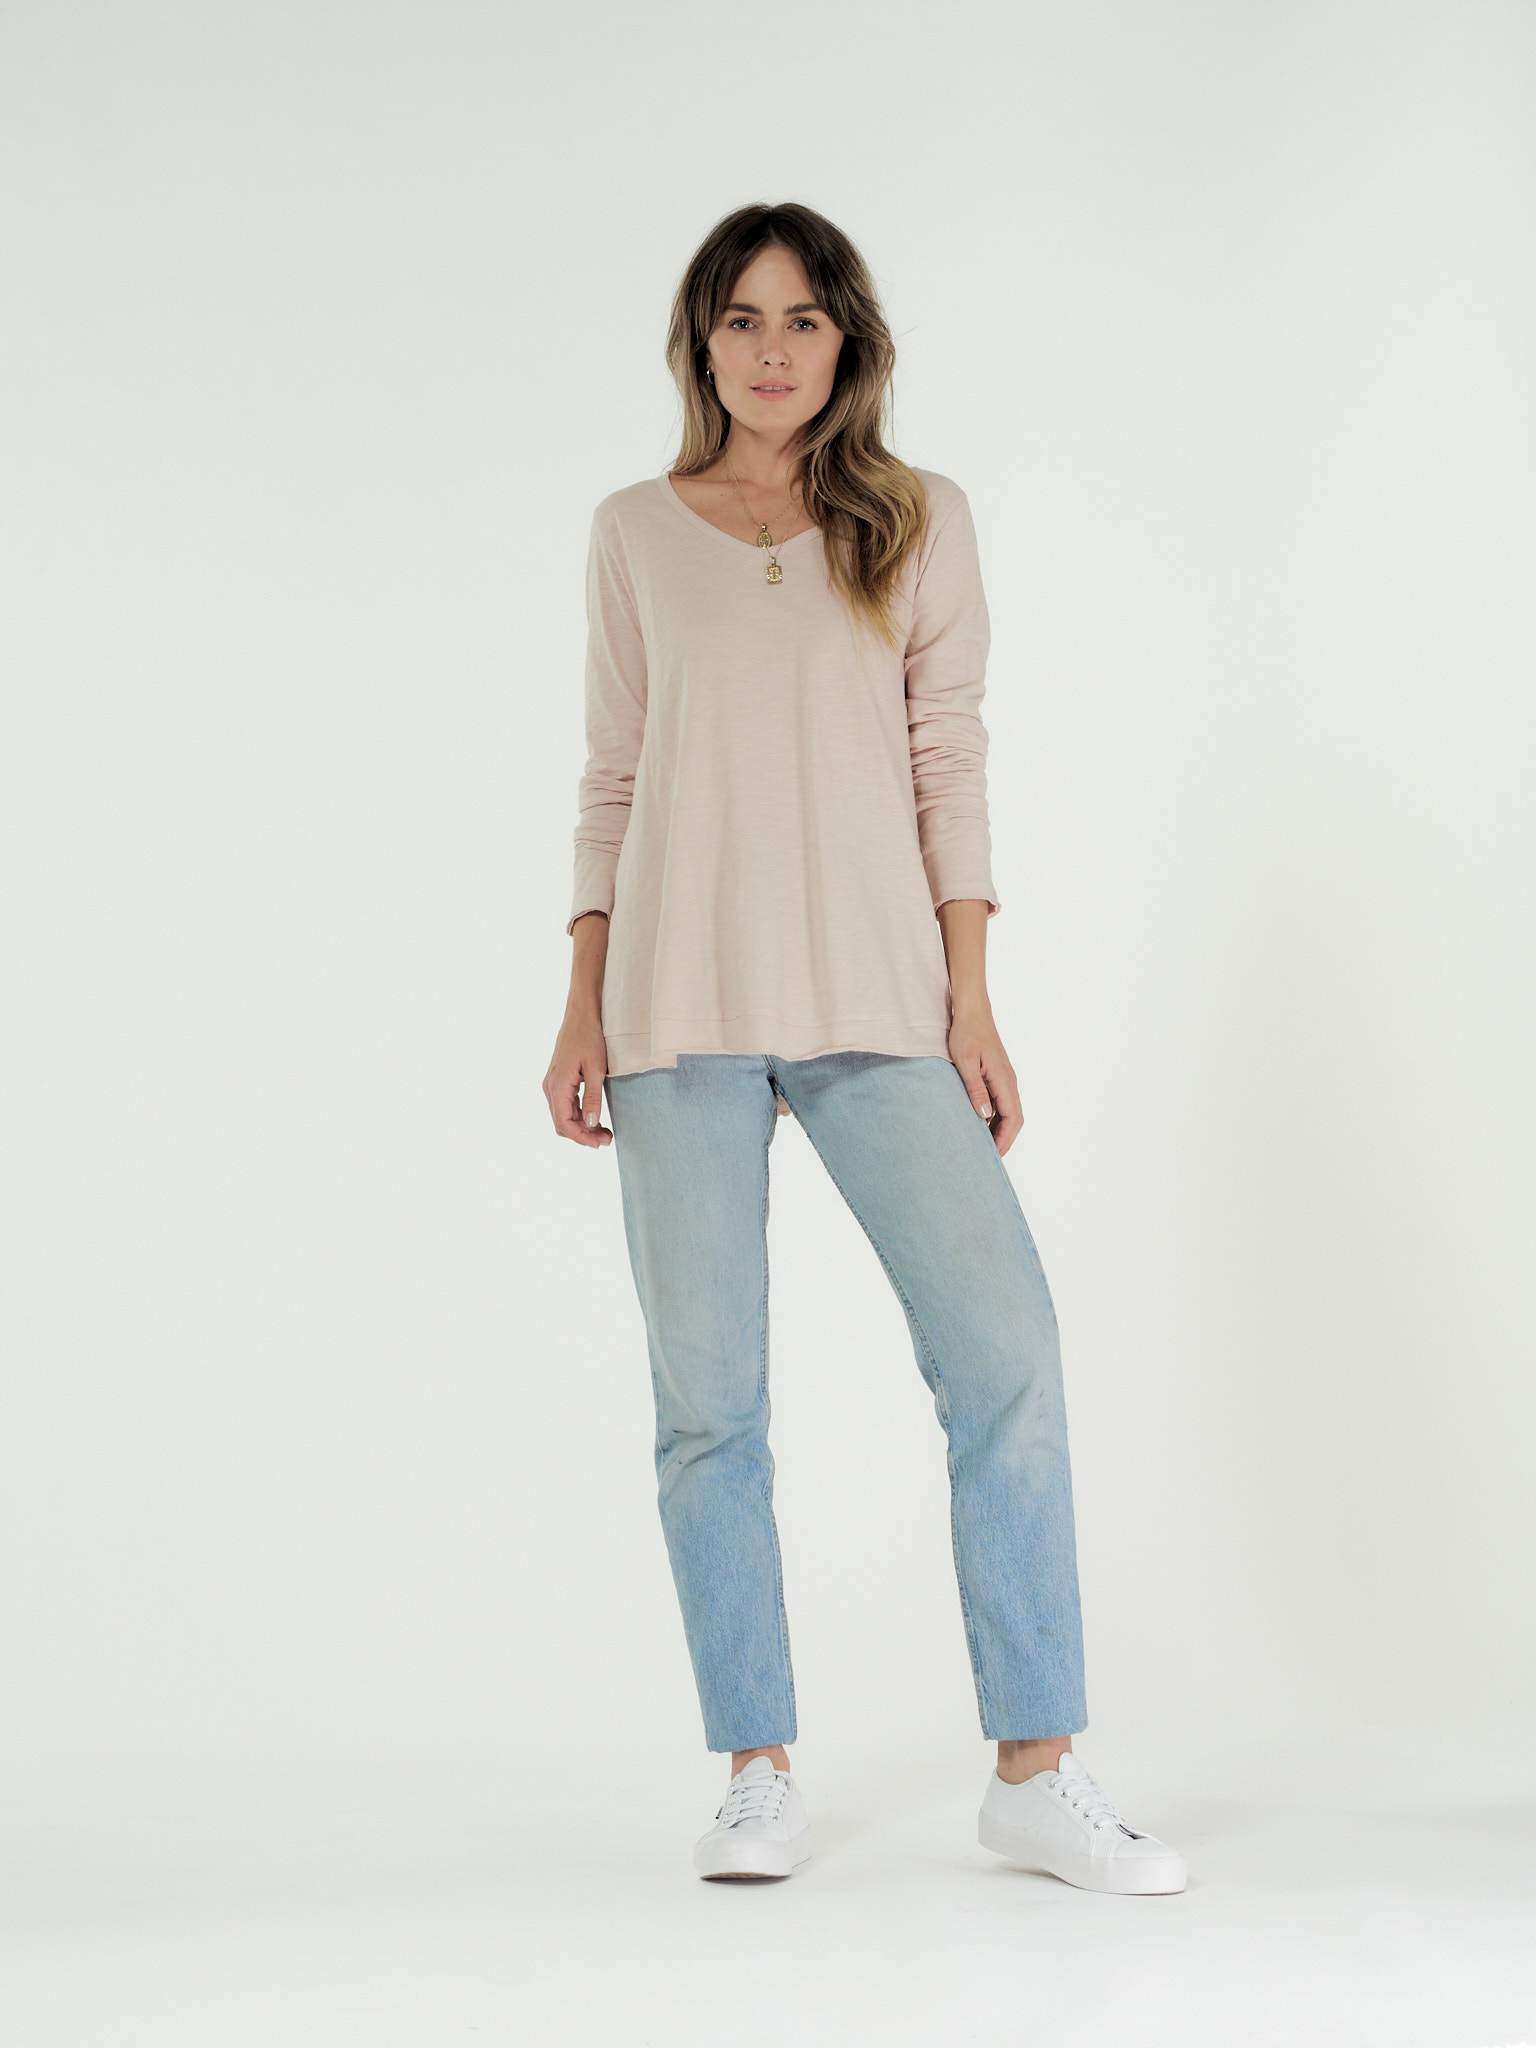 CLE ORGANICS - HARPER LONG SLEEVE TEE - BLUSH